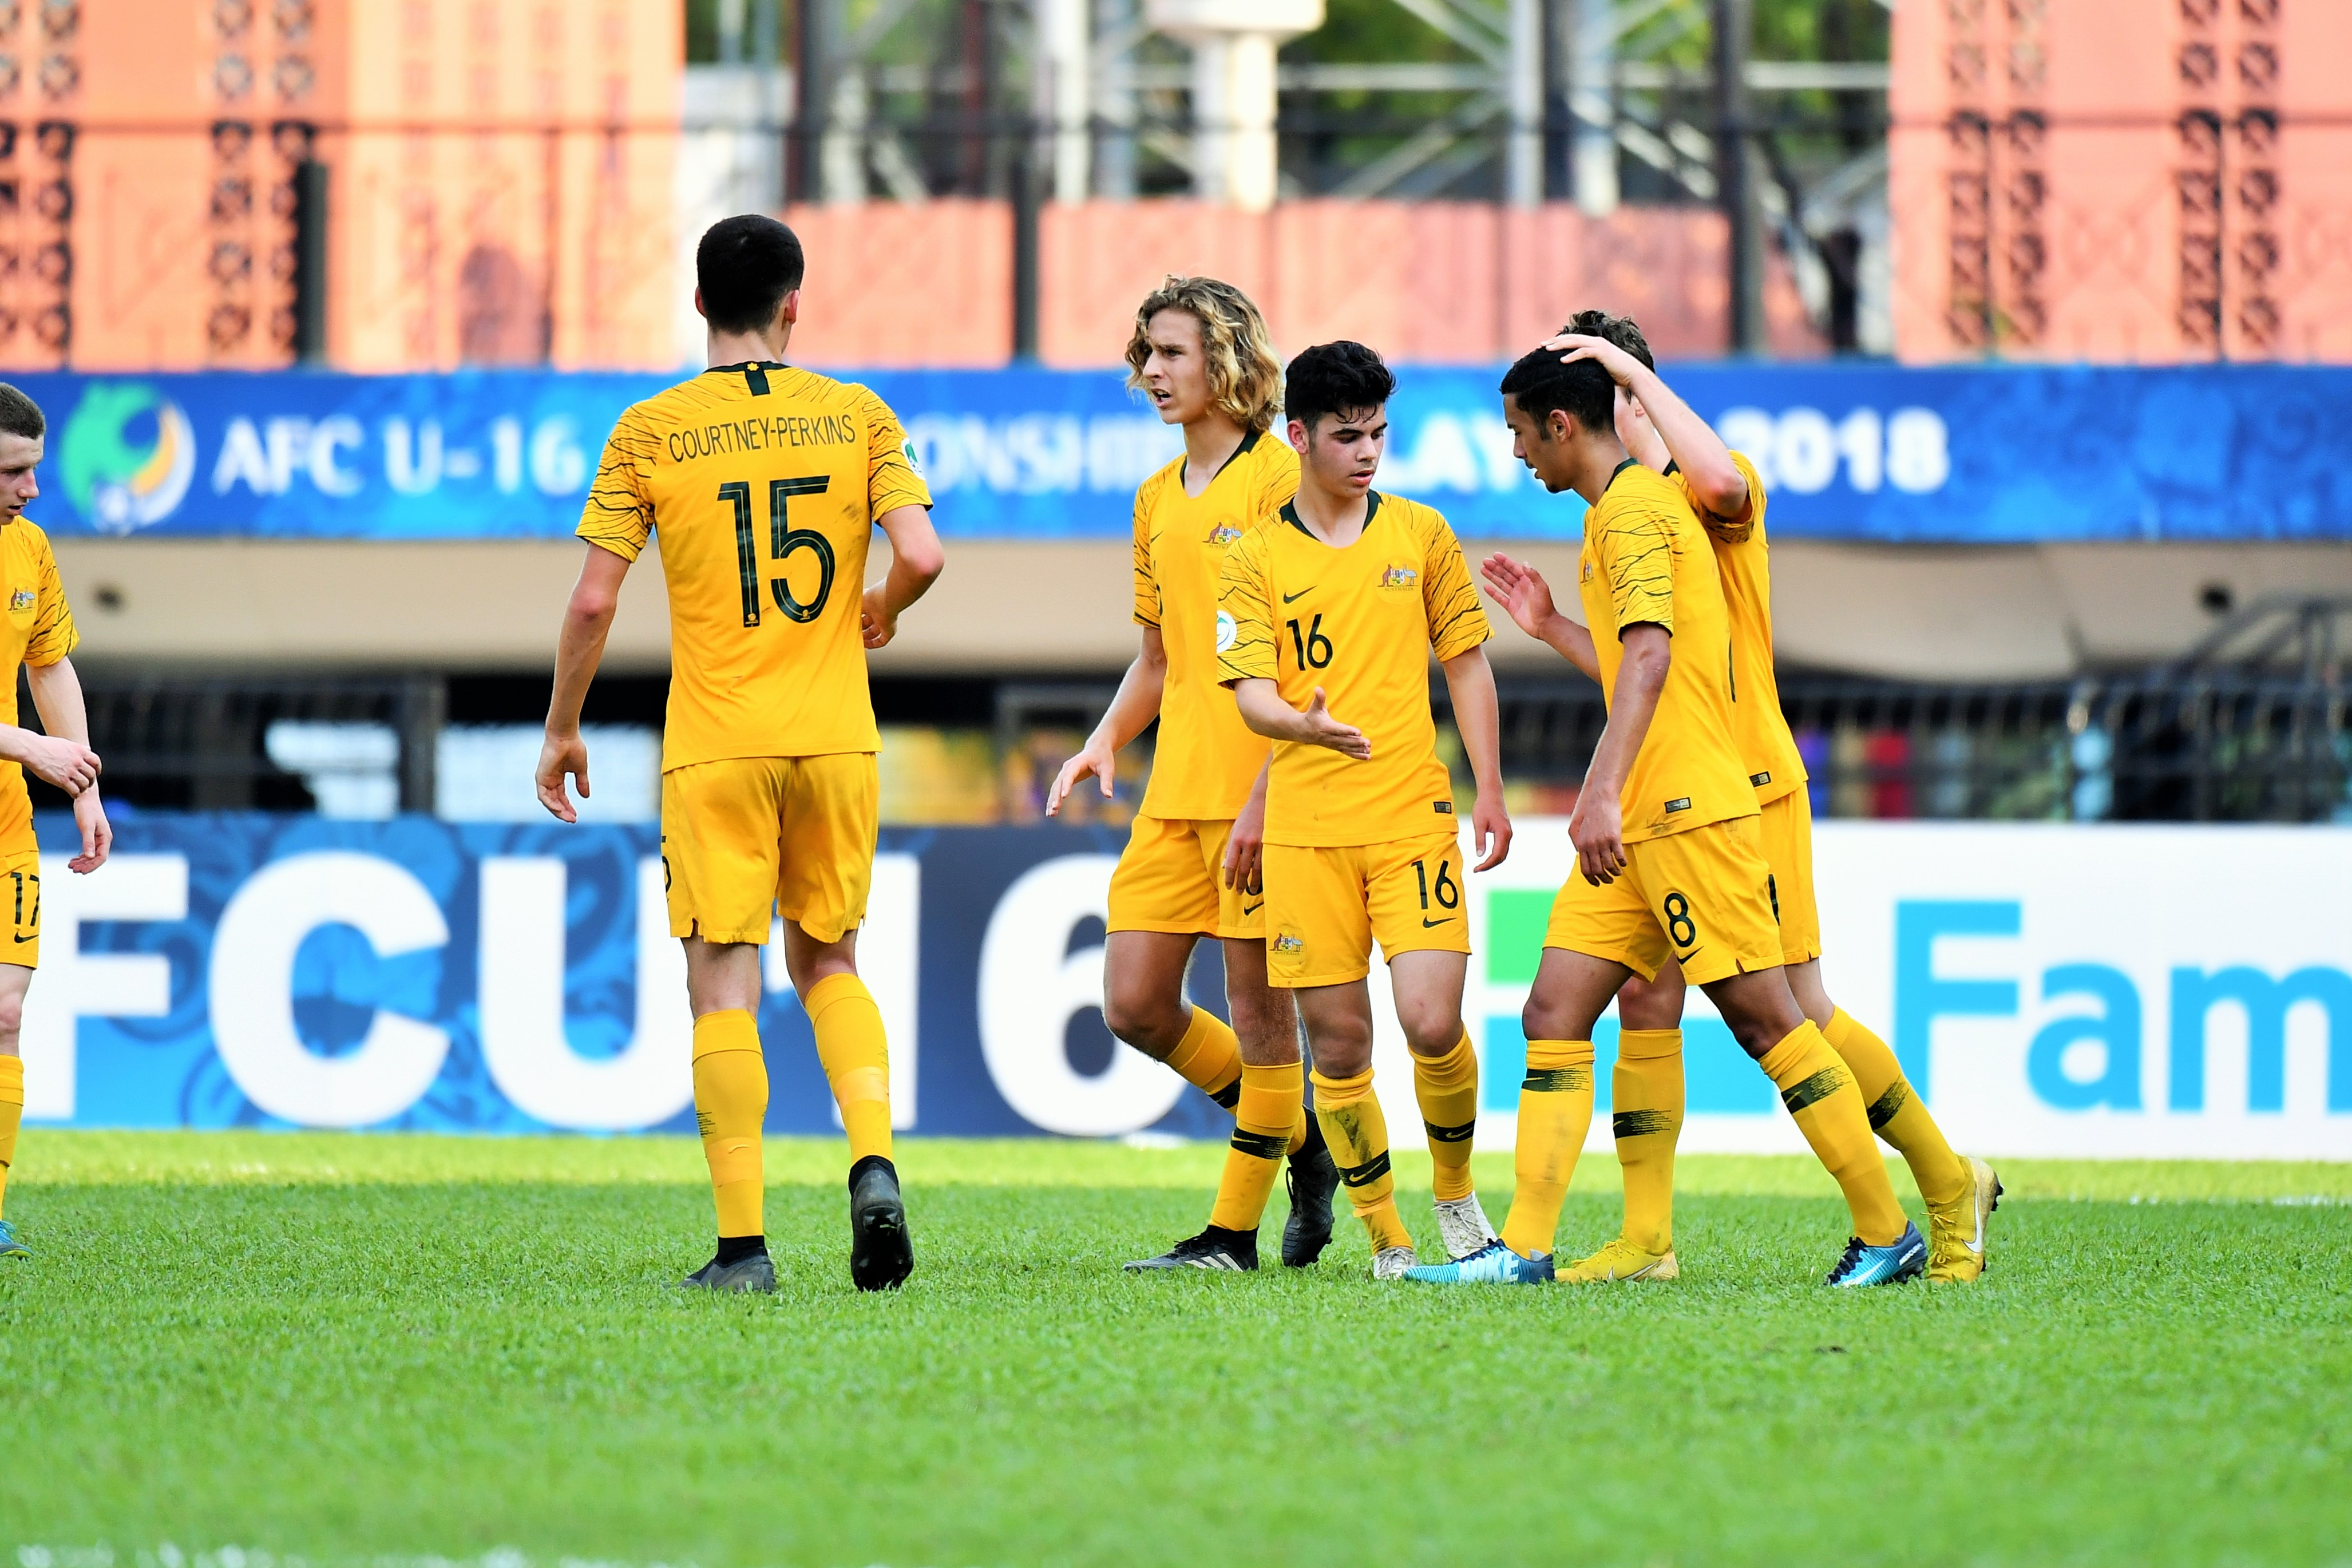 AFC U16 Championship 2020: Know your rivals - Australia